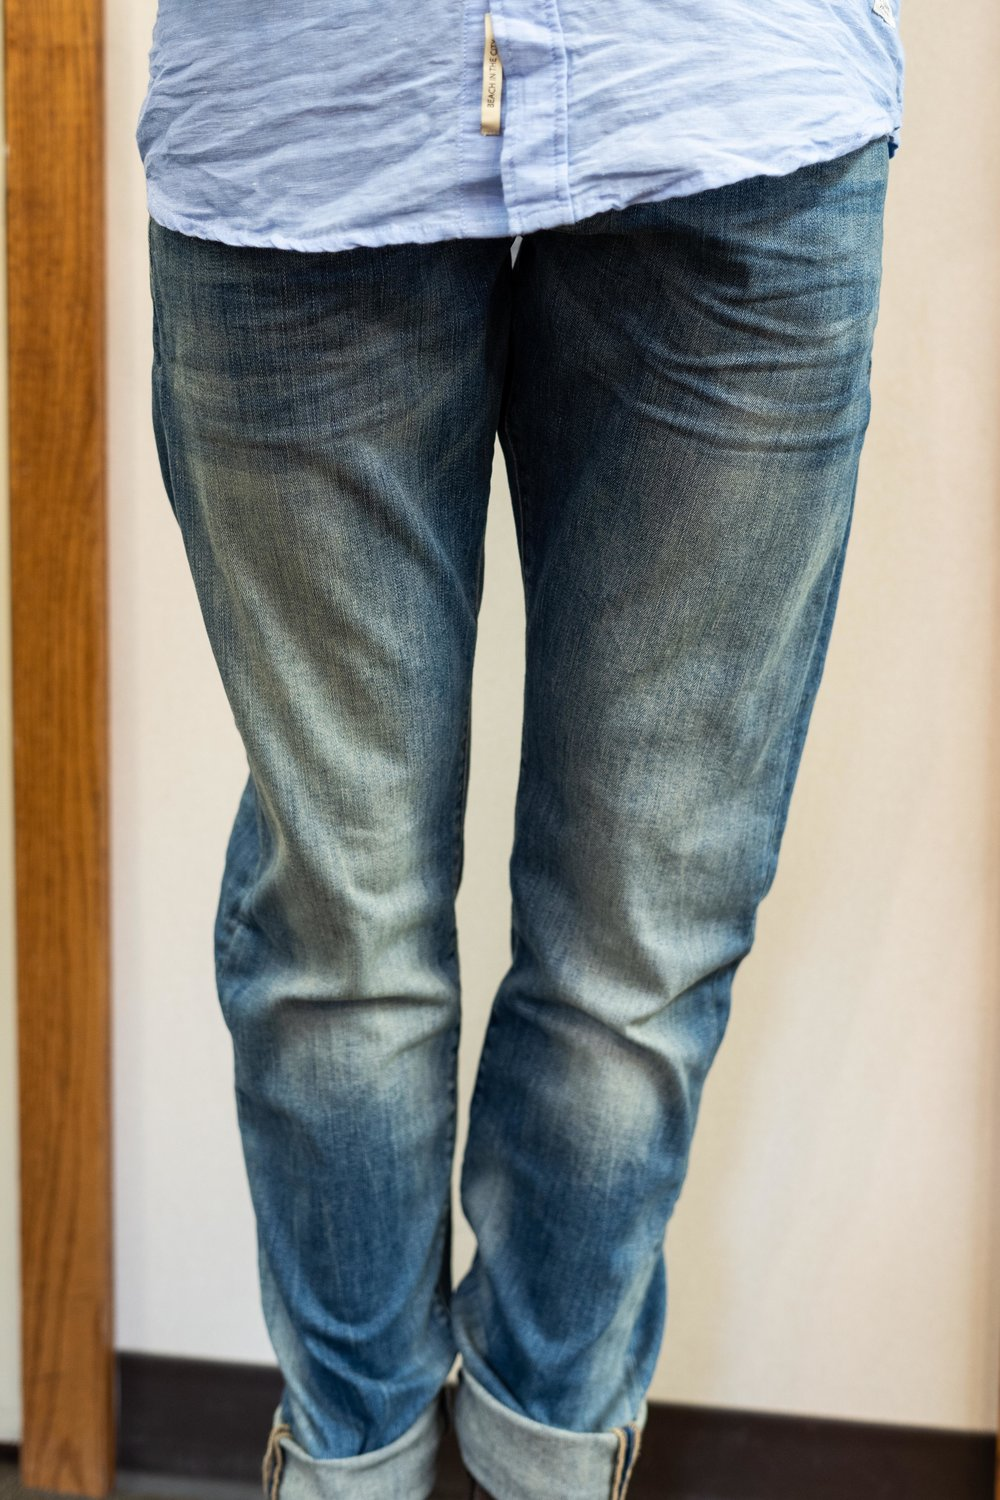 red manican jeans.jpg